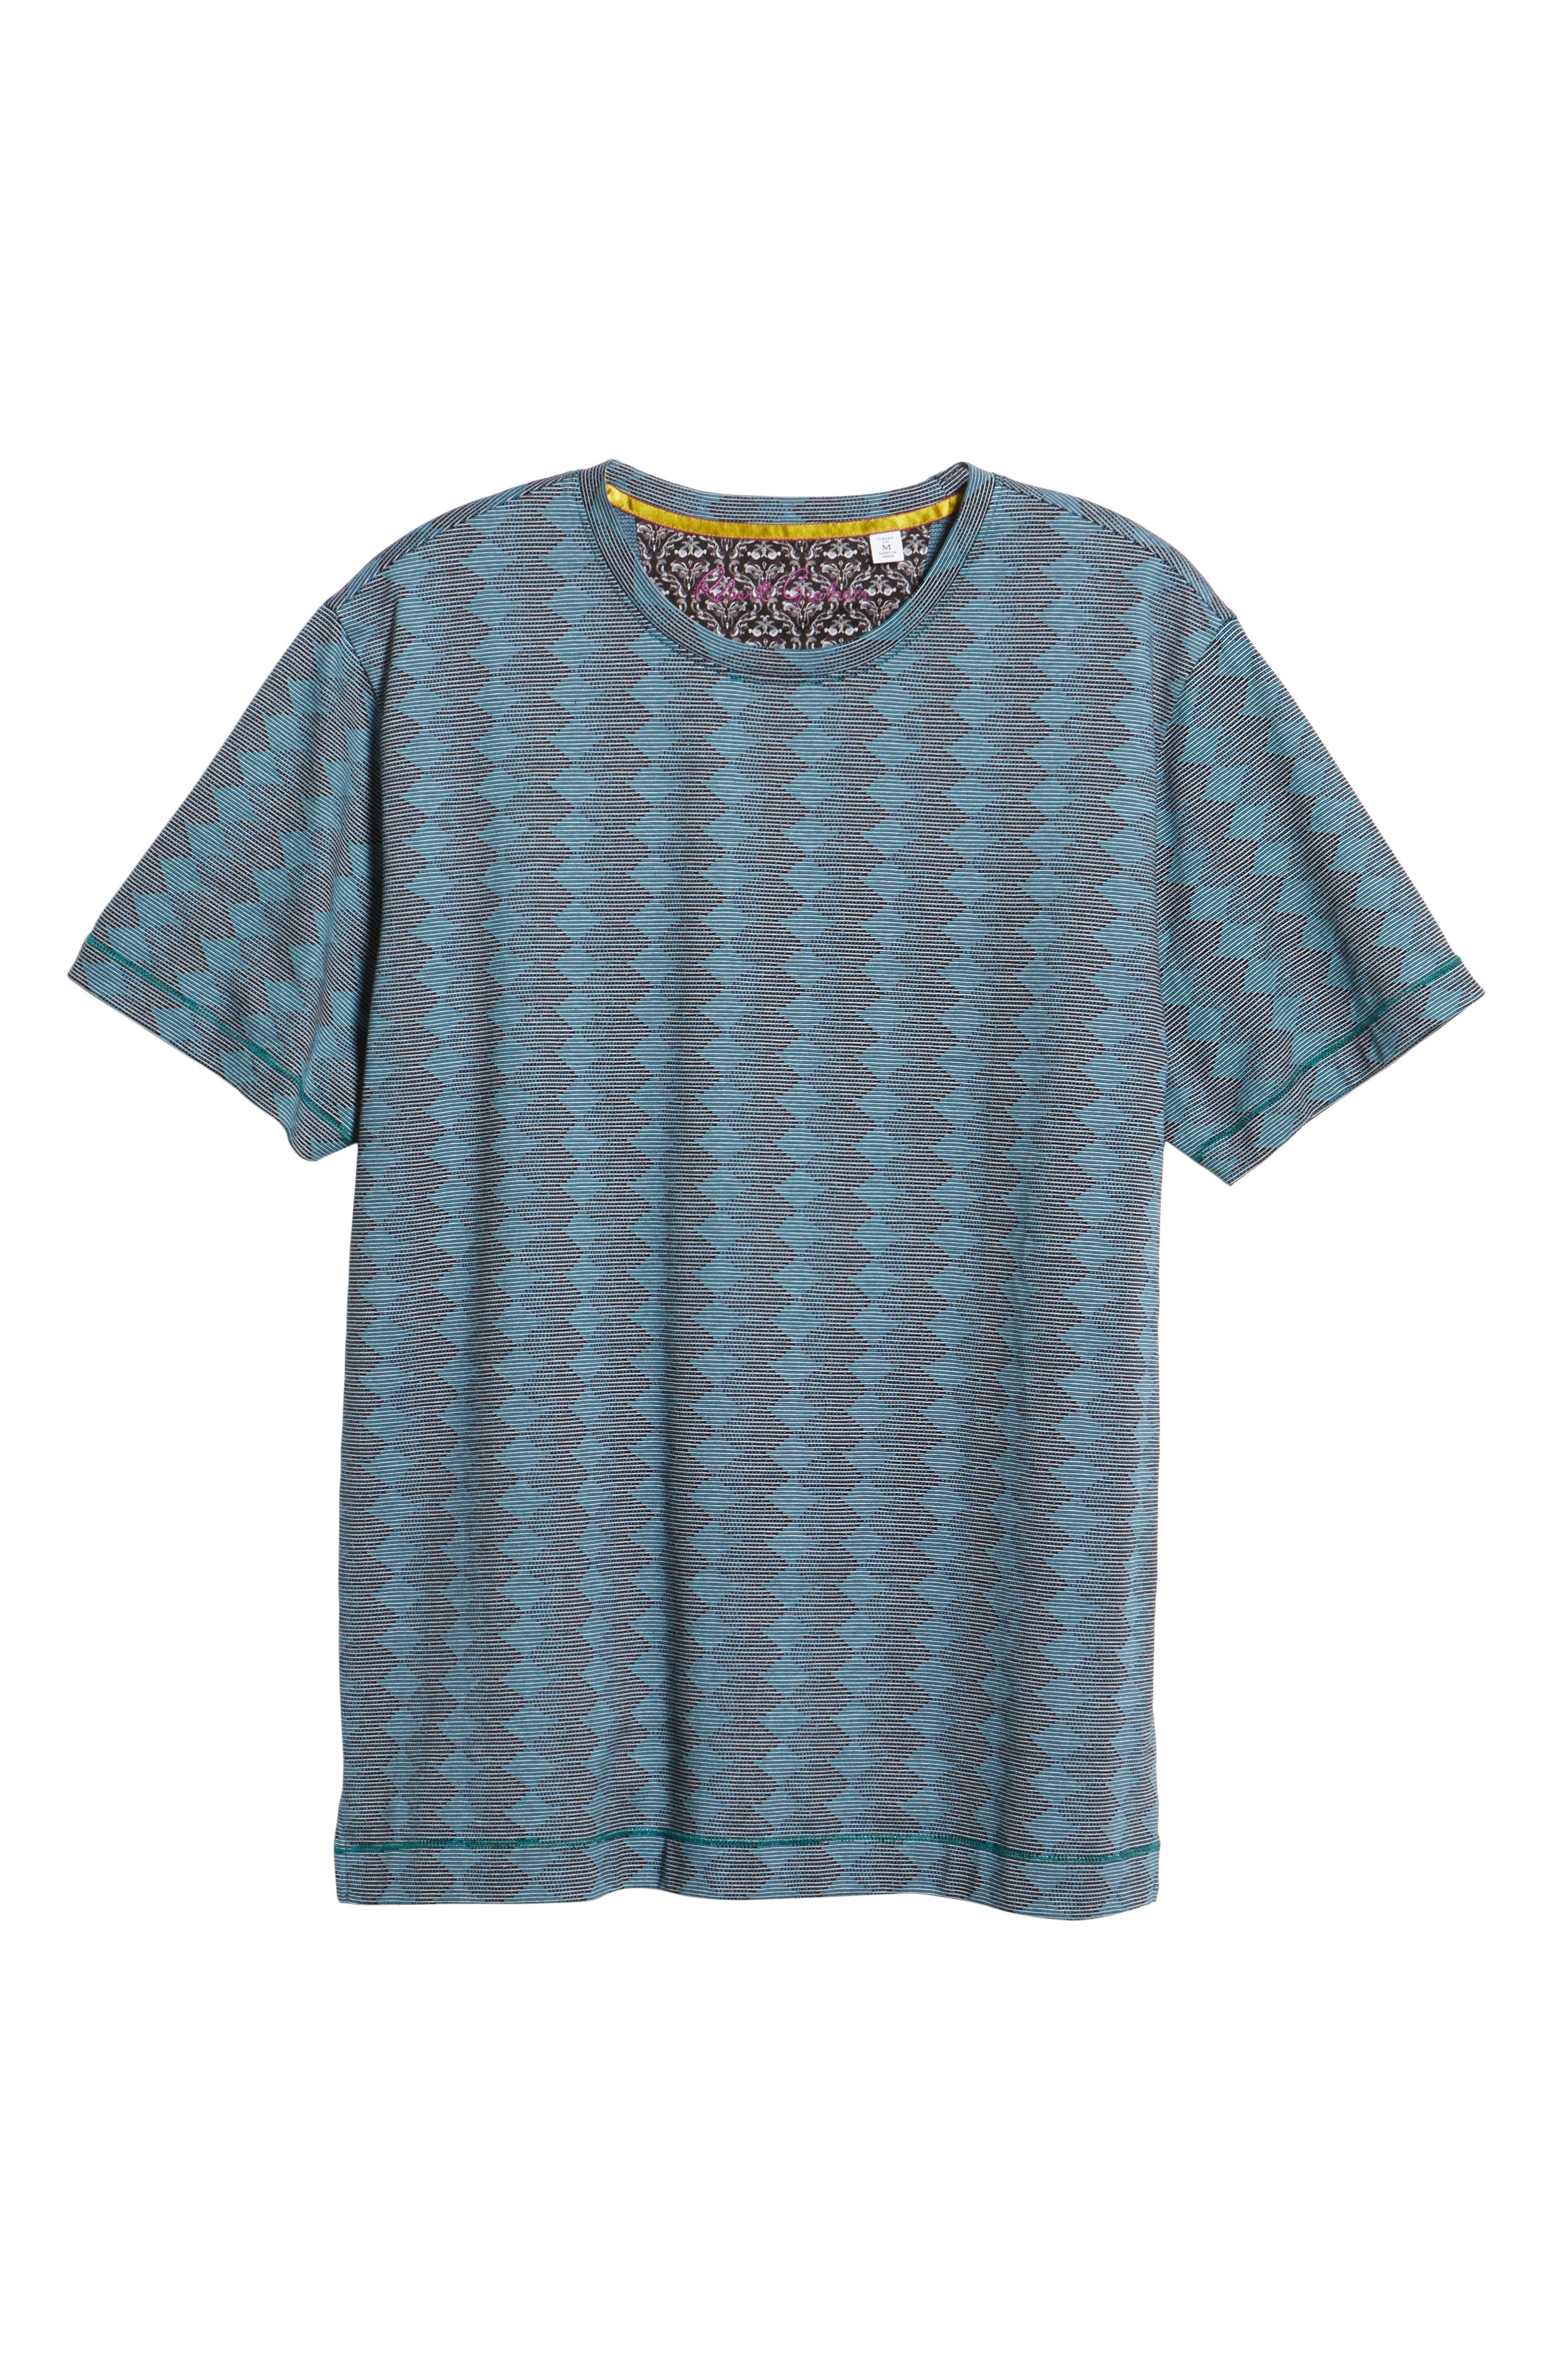 Philippe T-Shirt,                             Alternate thumbnail 6, color,                             TEAL